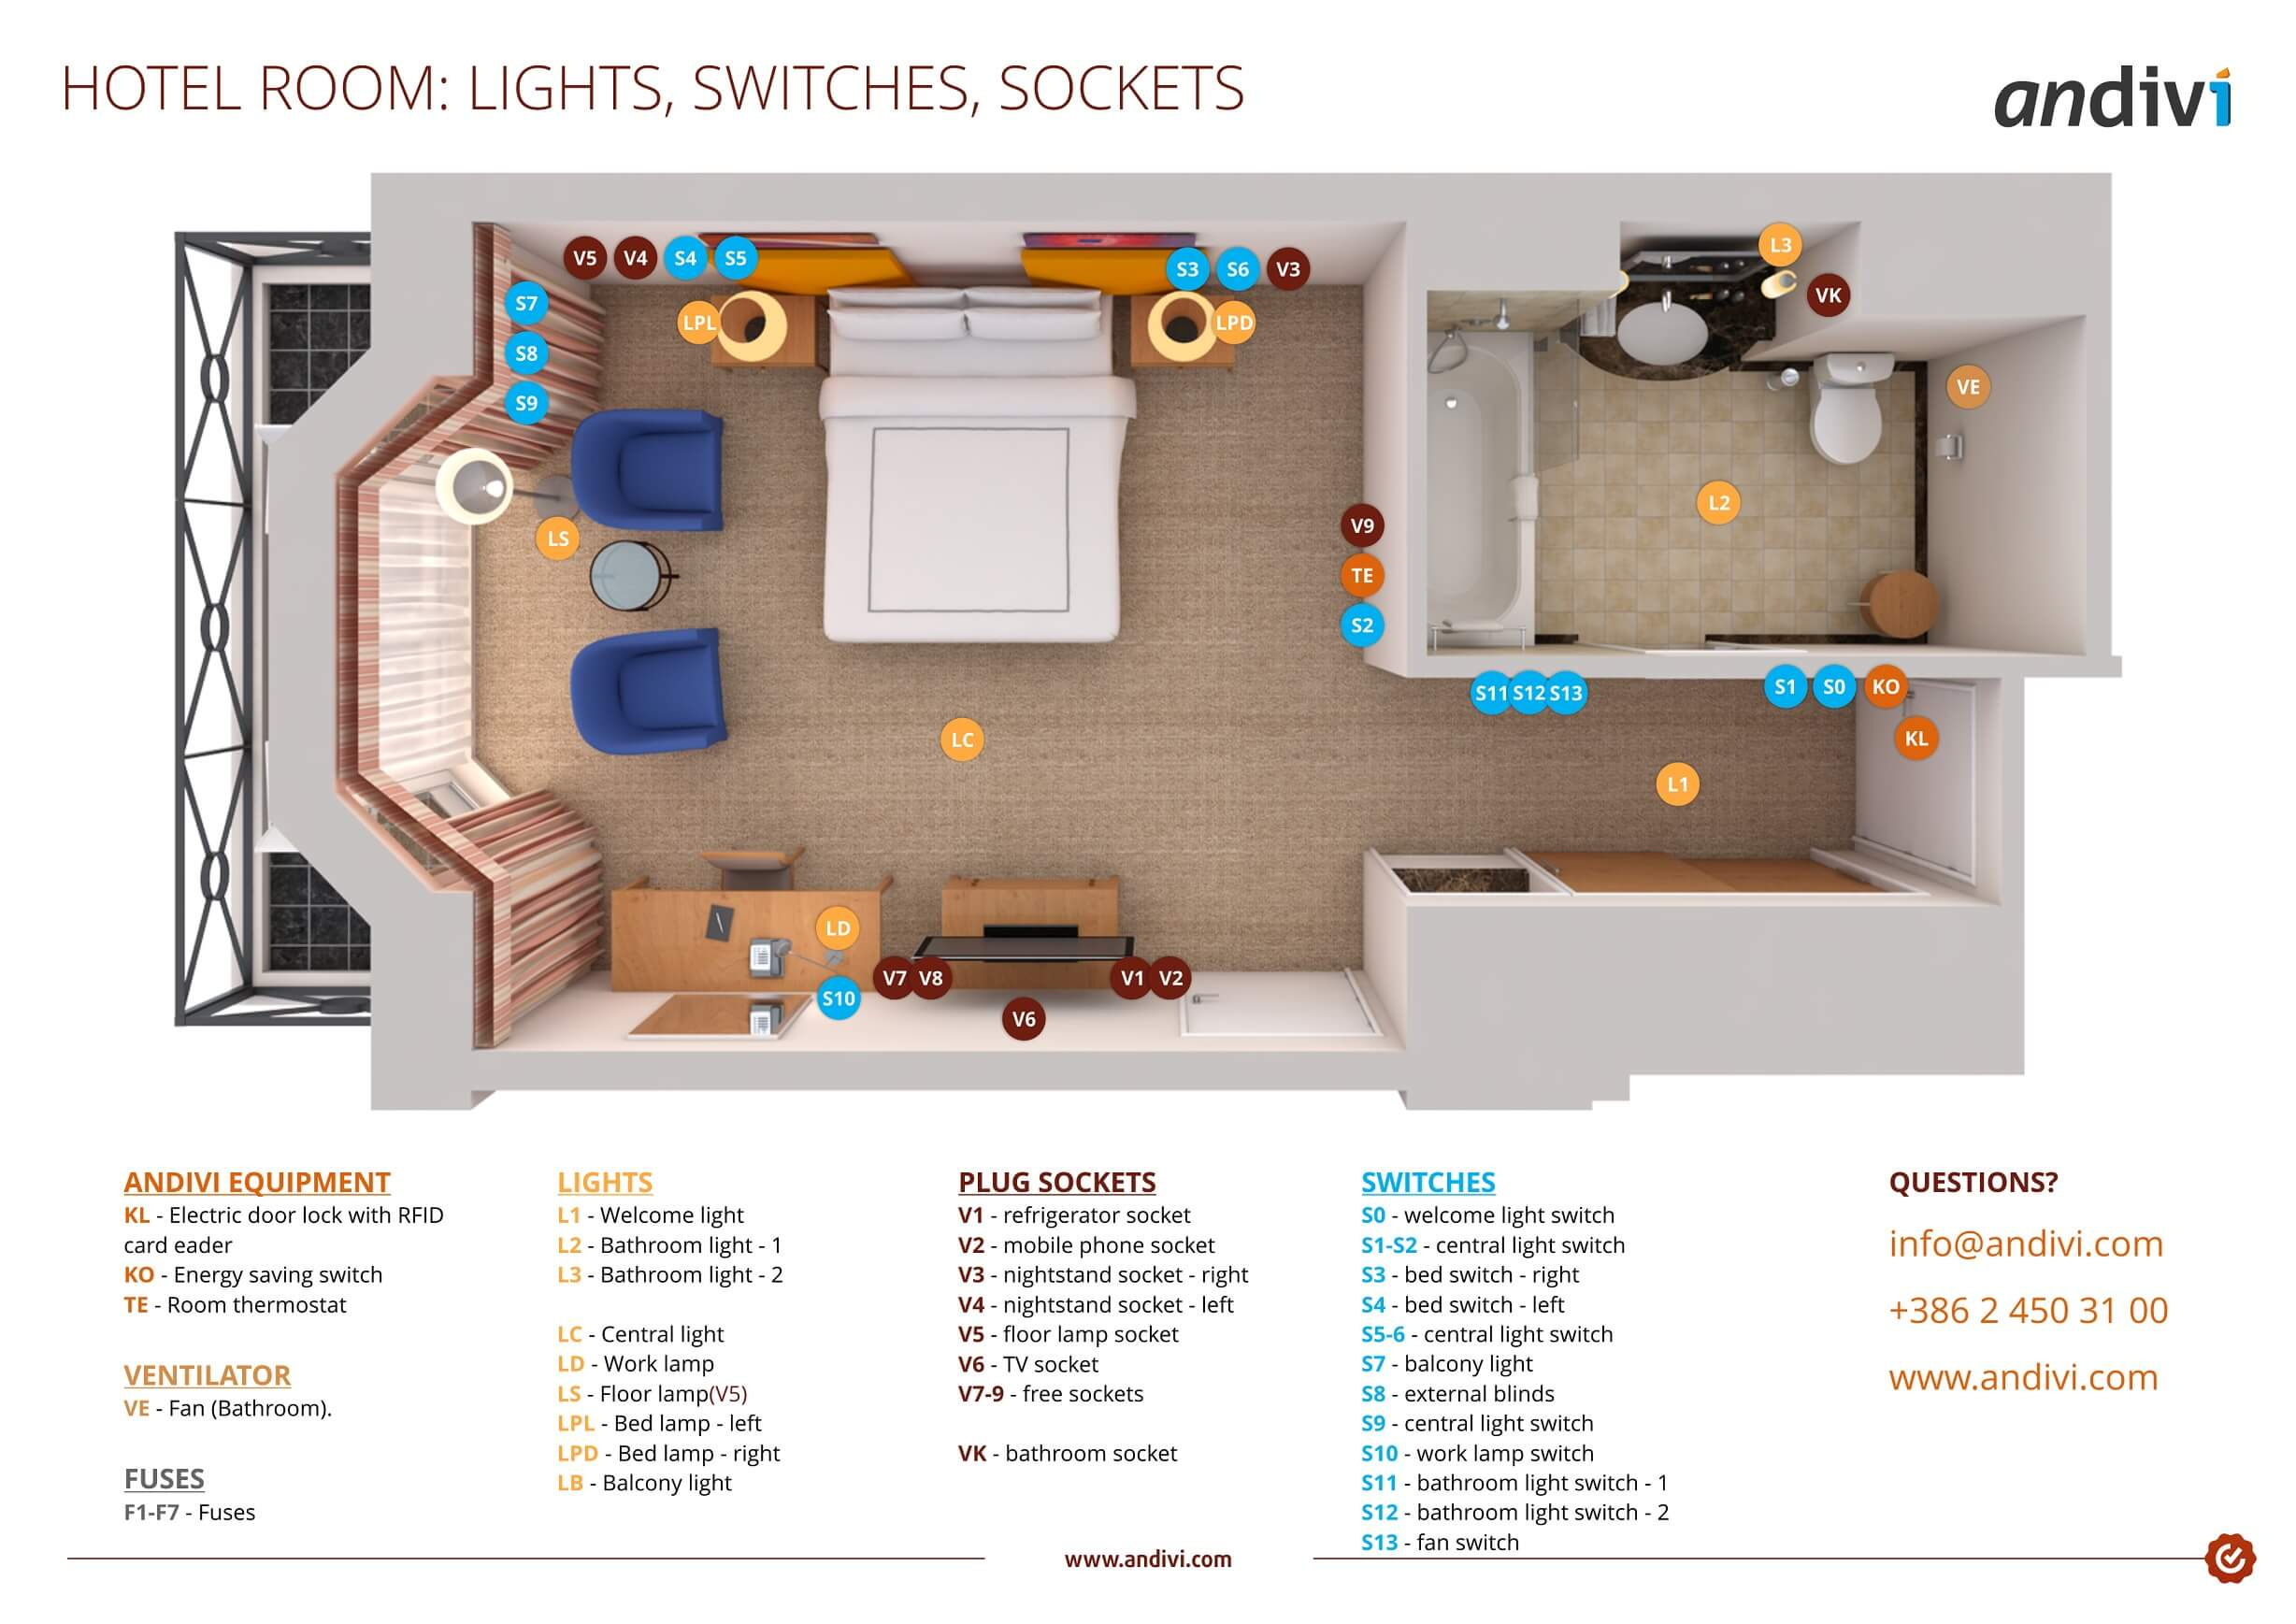 Electrical Installations Layout Plan For A Typical Hotel Star Wiring Diagram Elec Car Installation Room Lights Sockets Switches